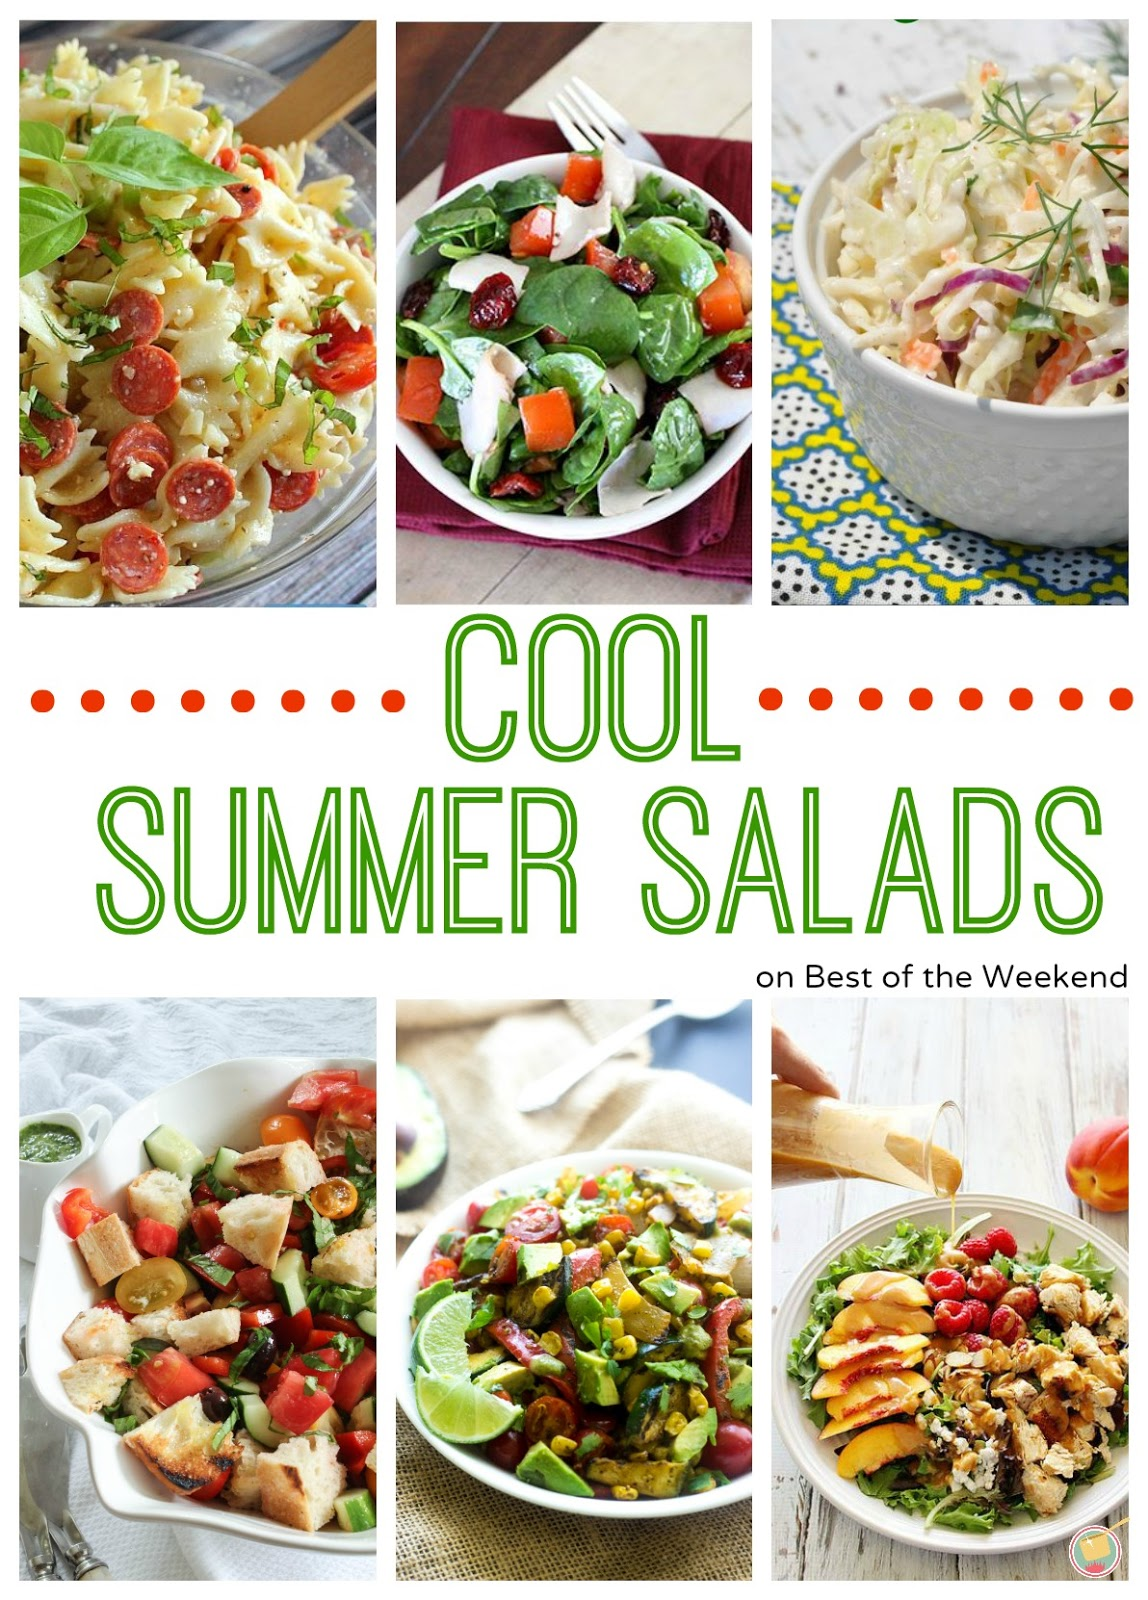 Best of the weekend and cool summer salads cooking on for Best summer pasta salad recipes ever